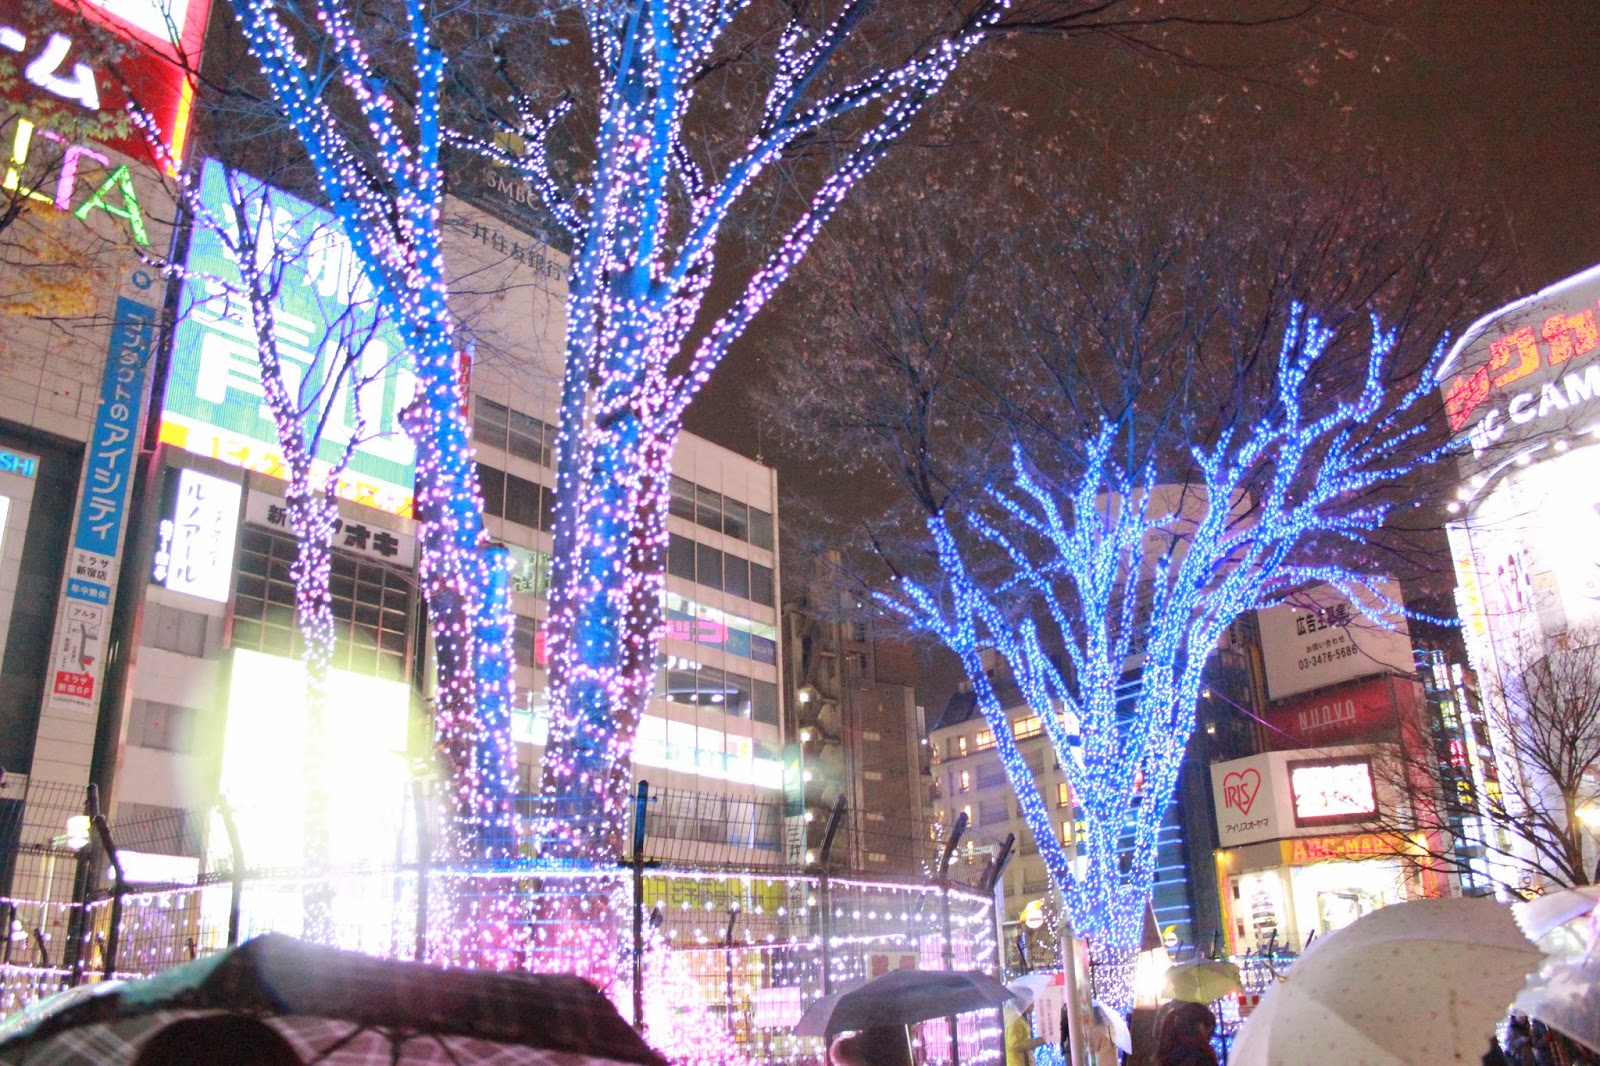 Lights in Shinjuku, Japan